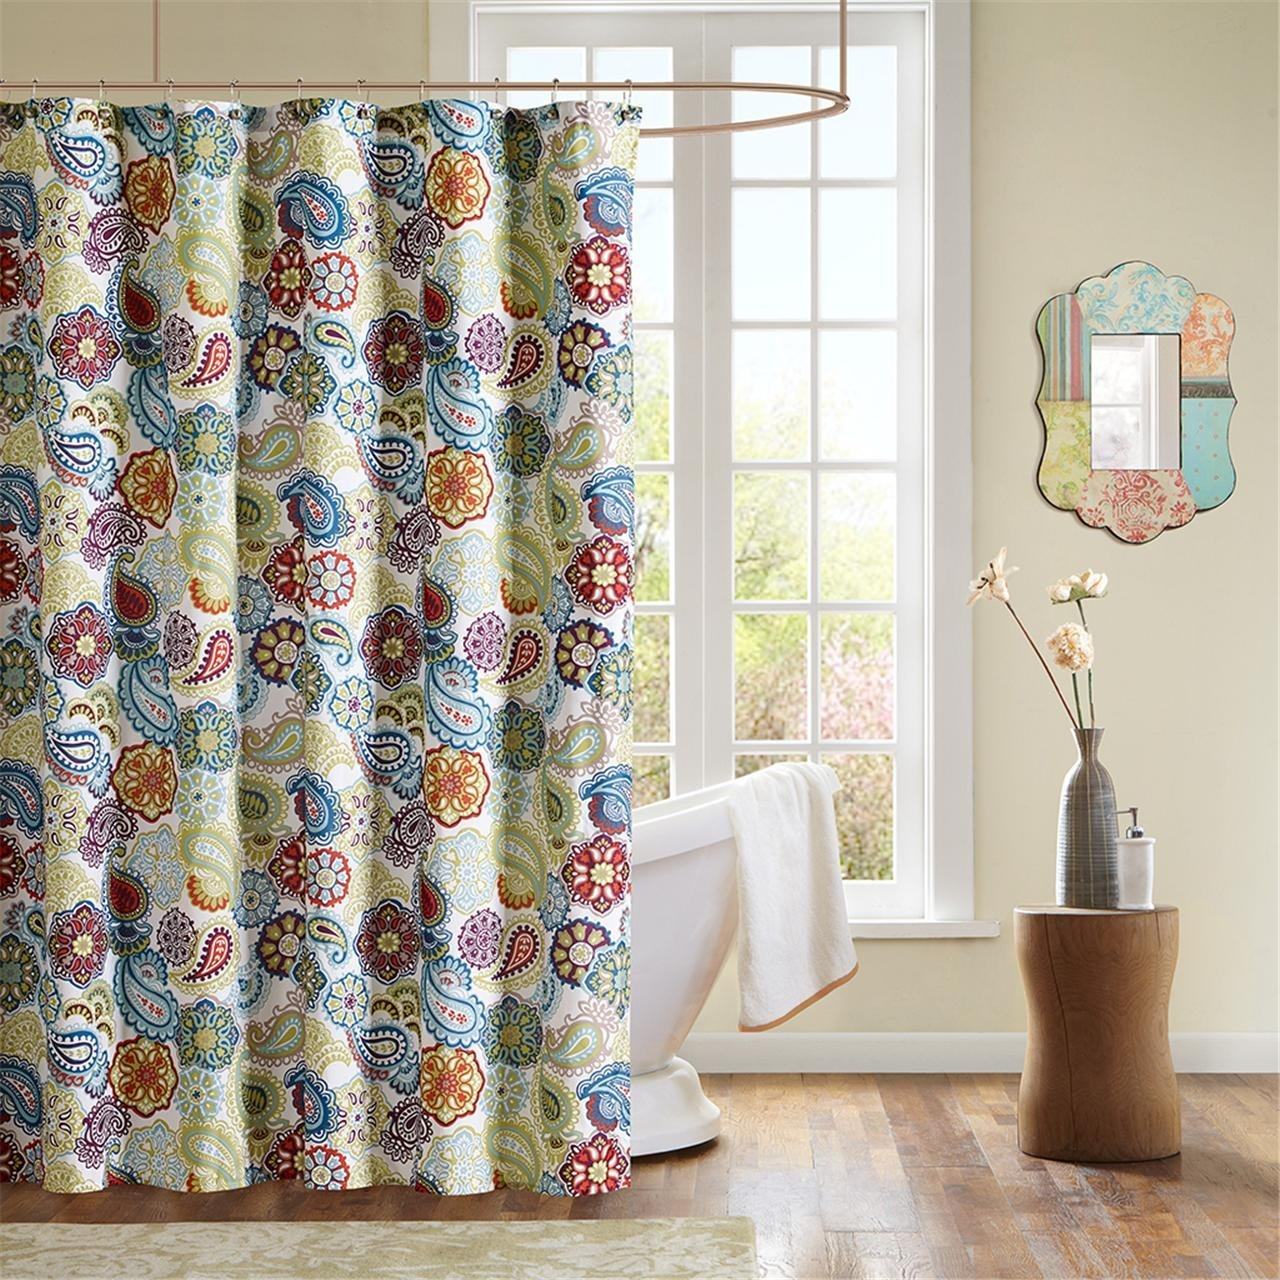 Beautiful Bathroom Decor Ideas with Floral Shower Curtain: Cute Cheap Shower Curtains | Ruffle Shower Curtain Pink | Floral Shower Curtain